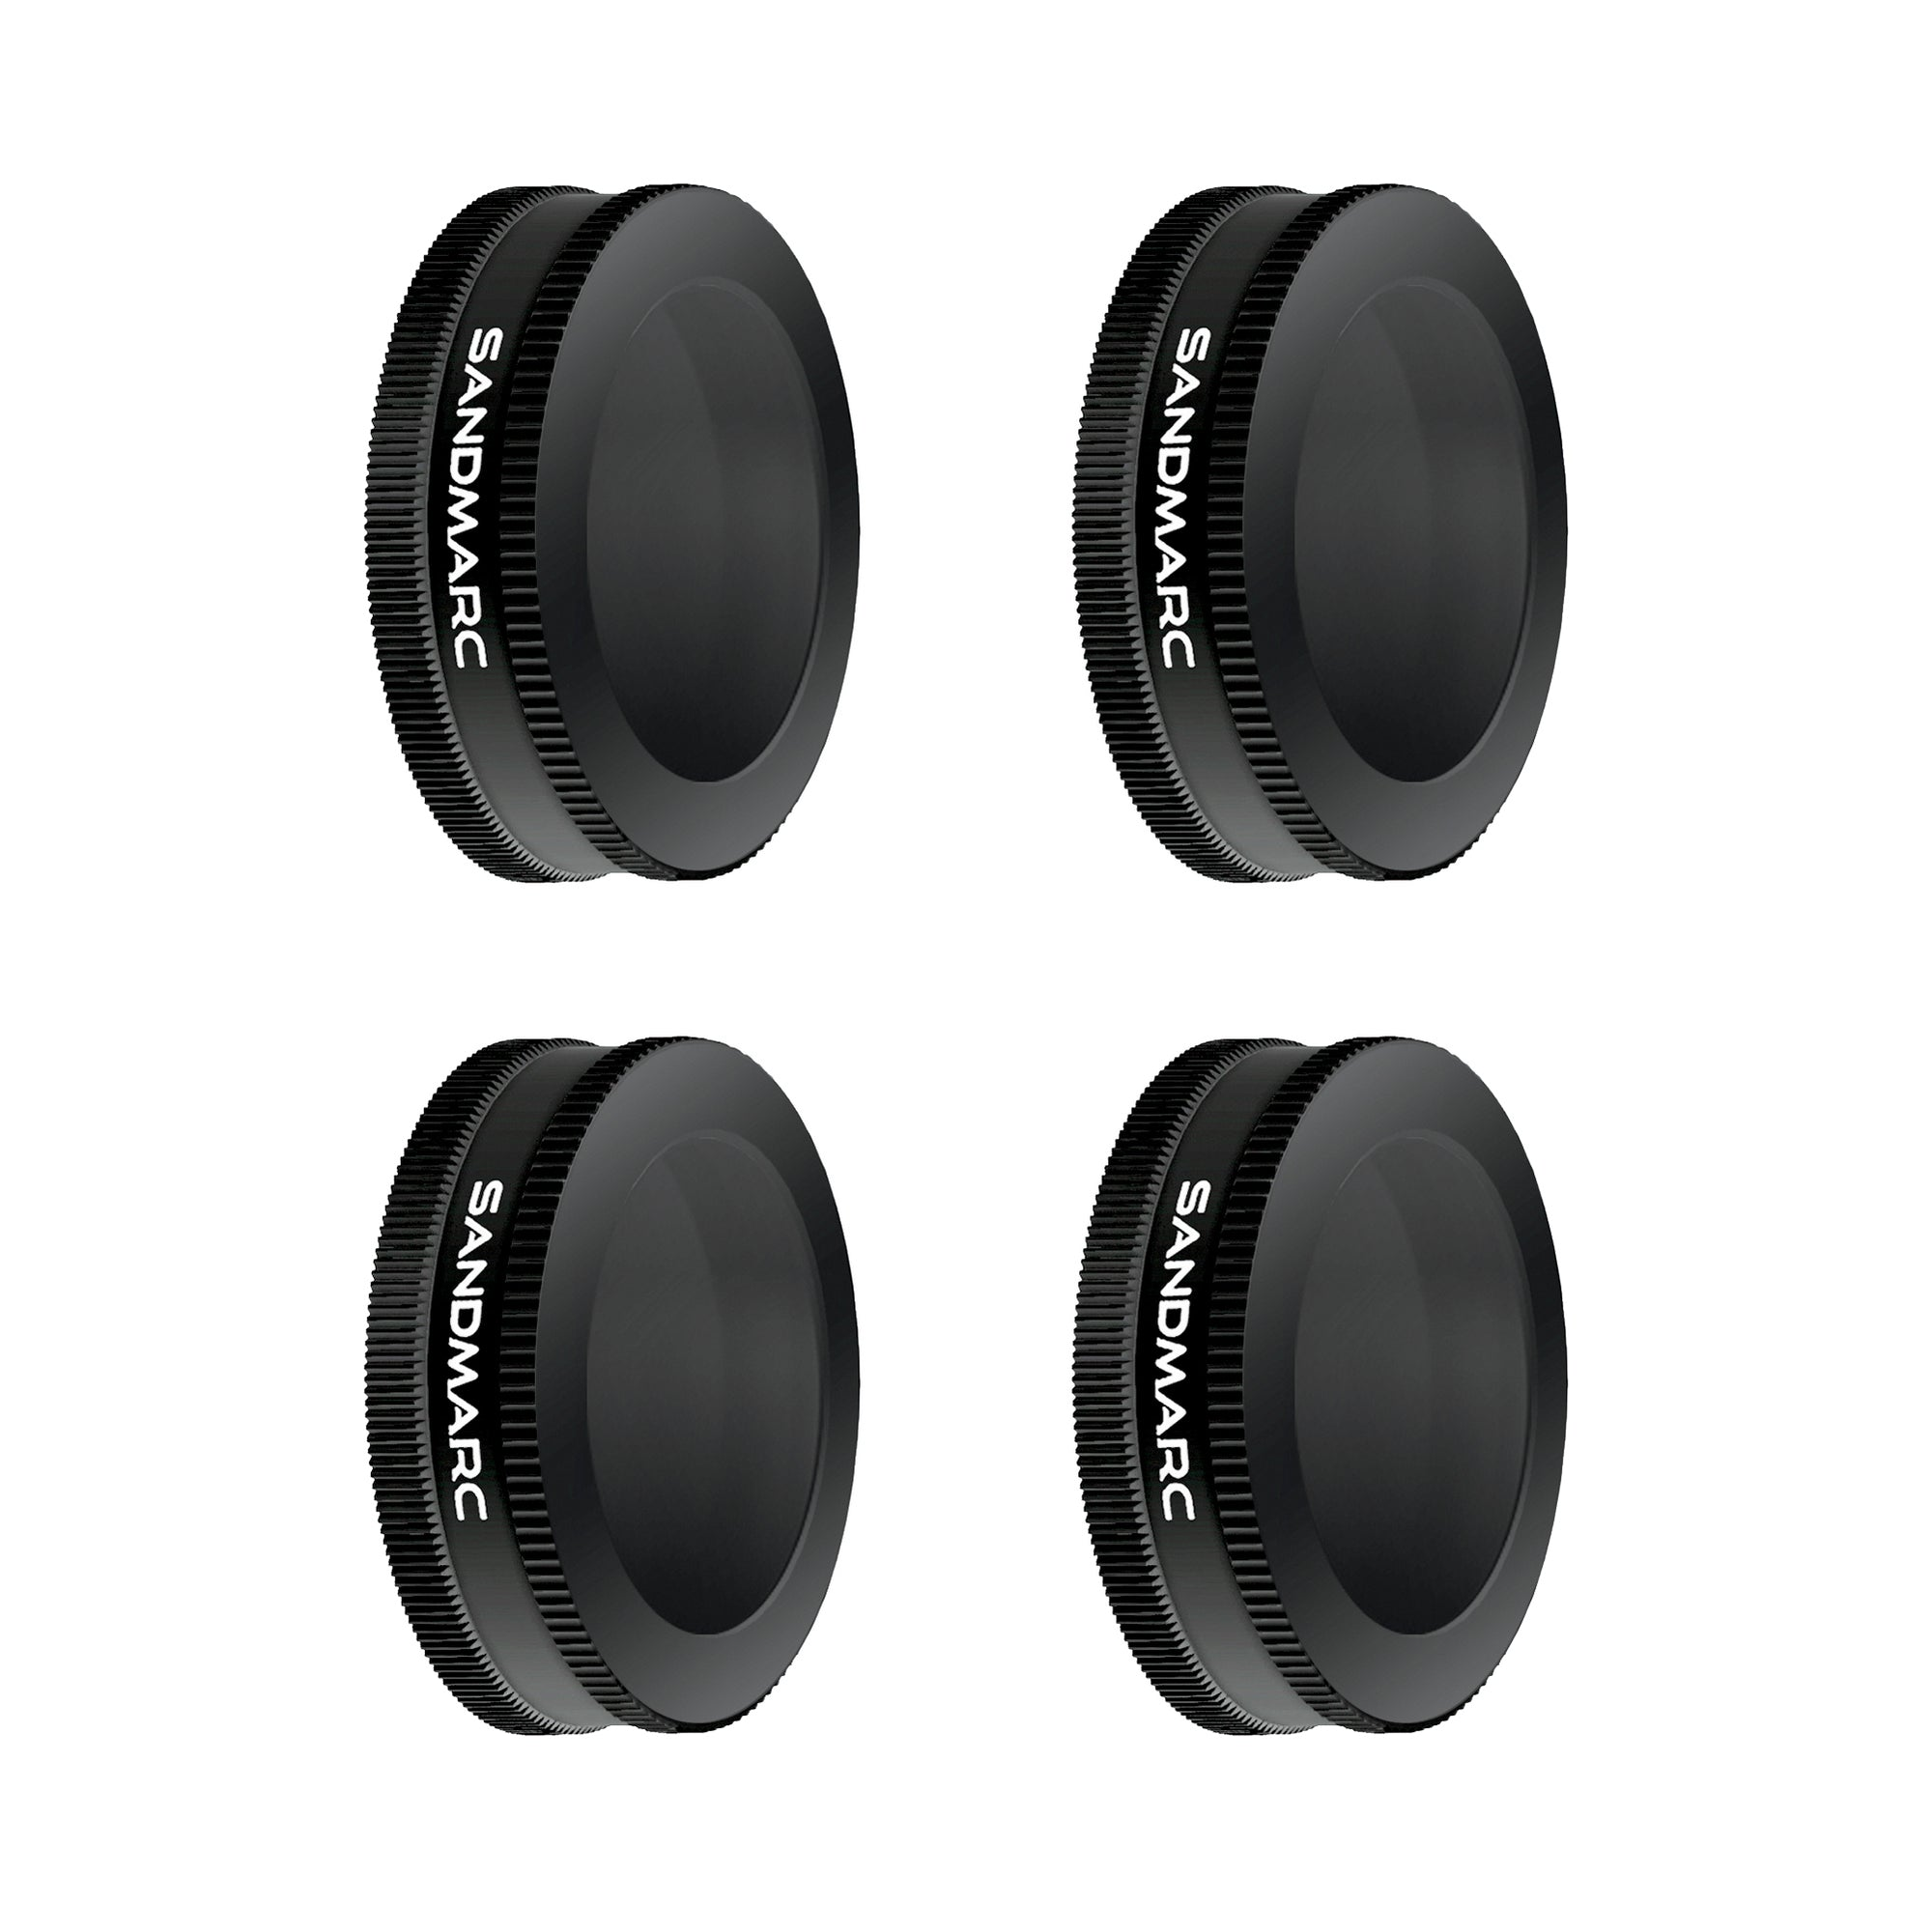 Sandmarc Pro Filters Mavic Air Nd4 Pl Nd32 Pl 4 Pack